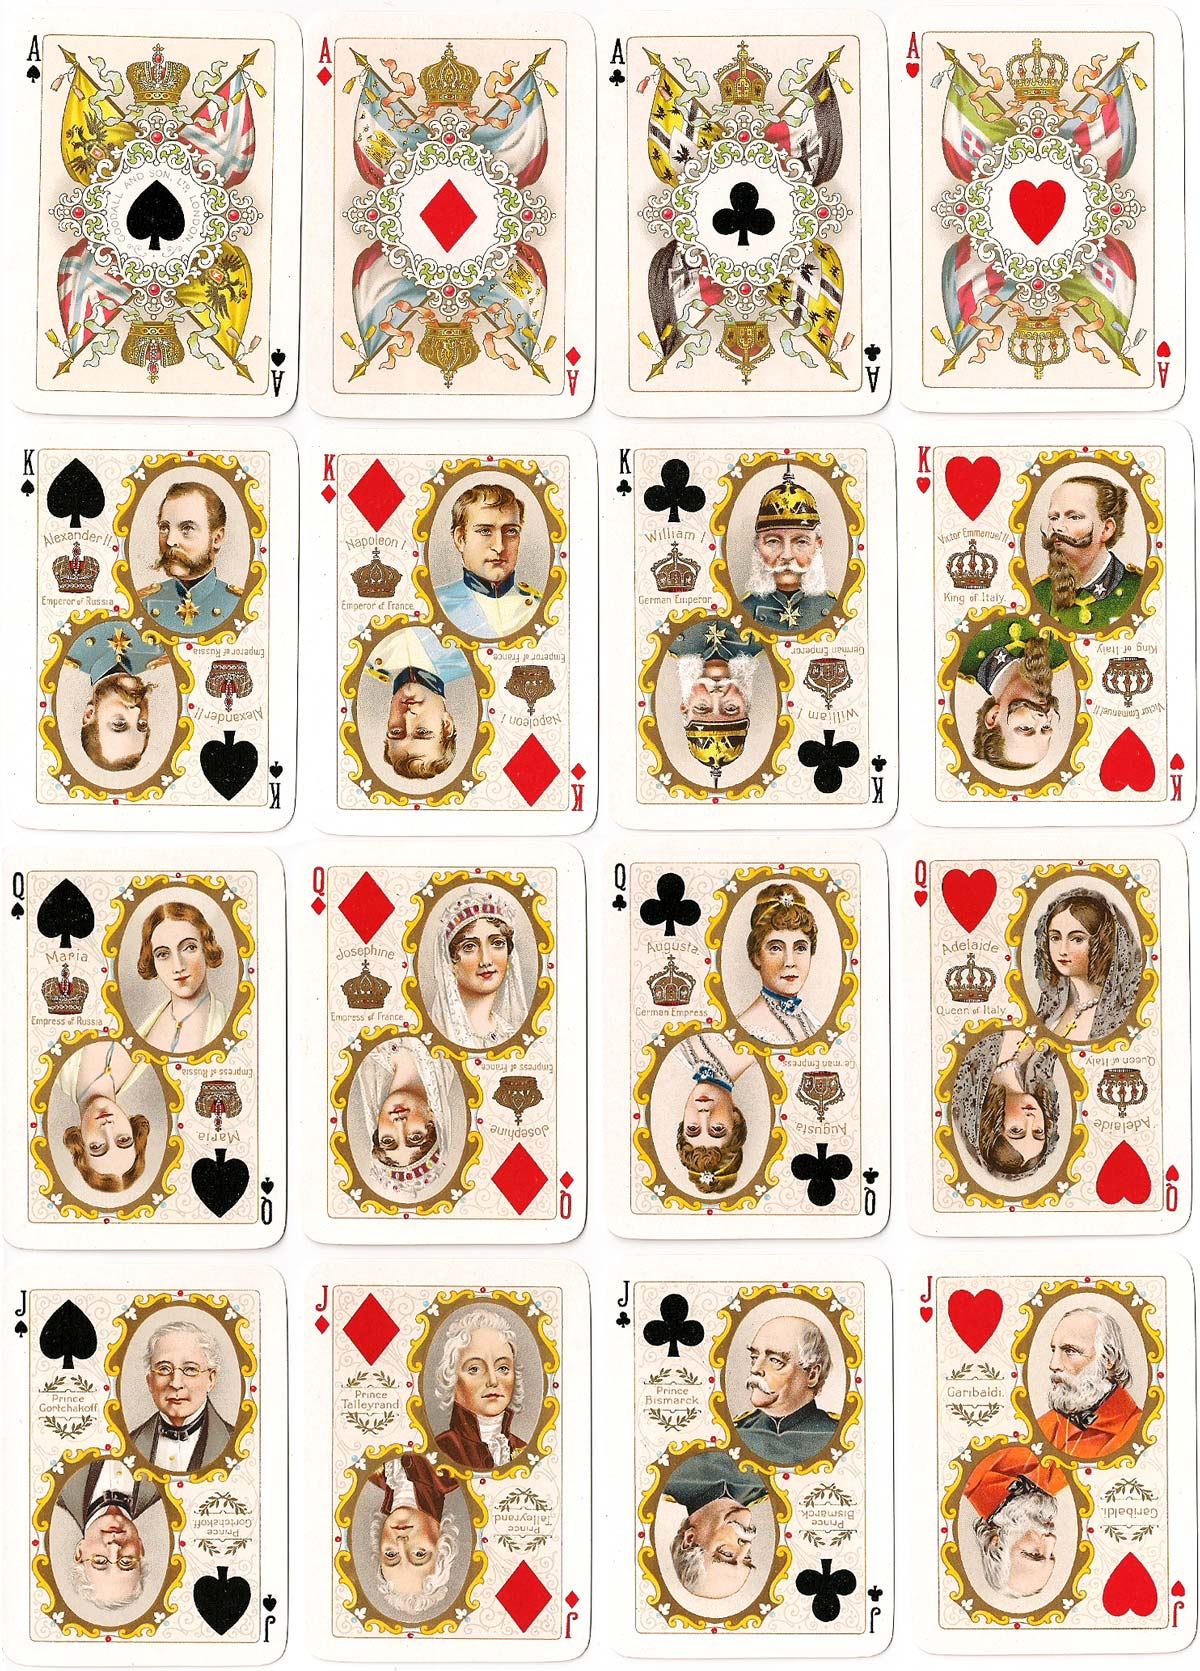 Goodall's Nineteenth Century Playing Cards, c.1900